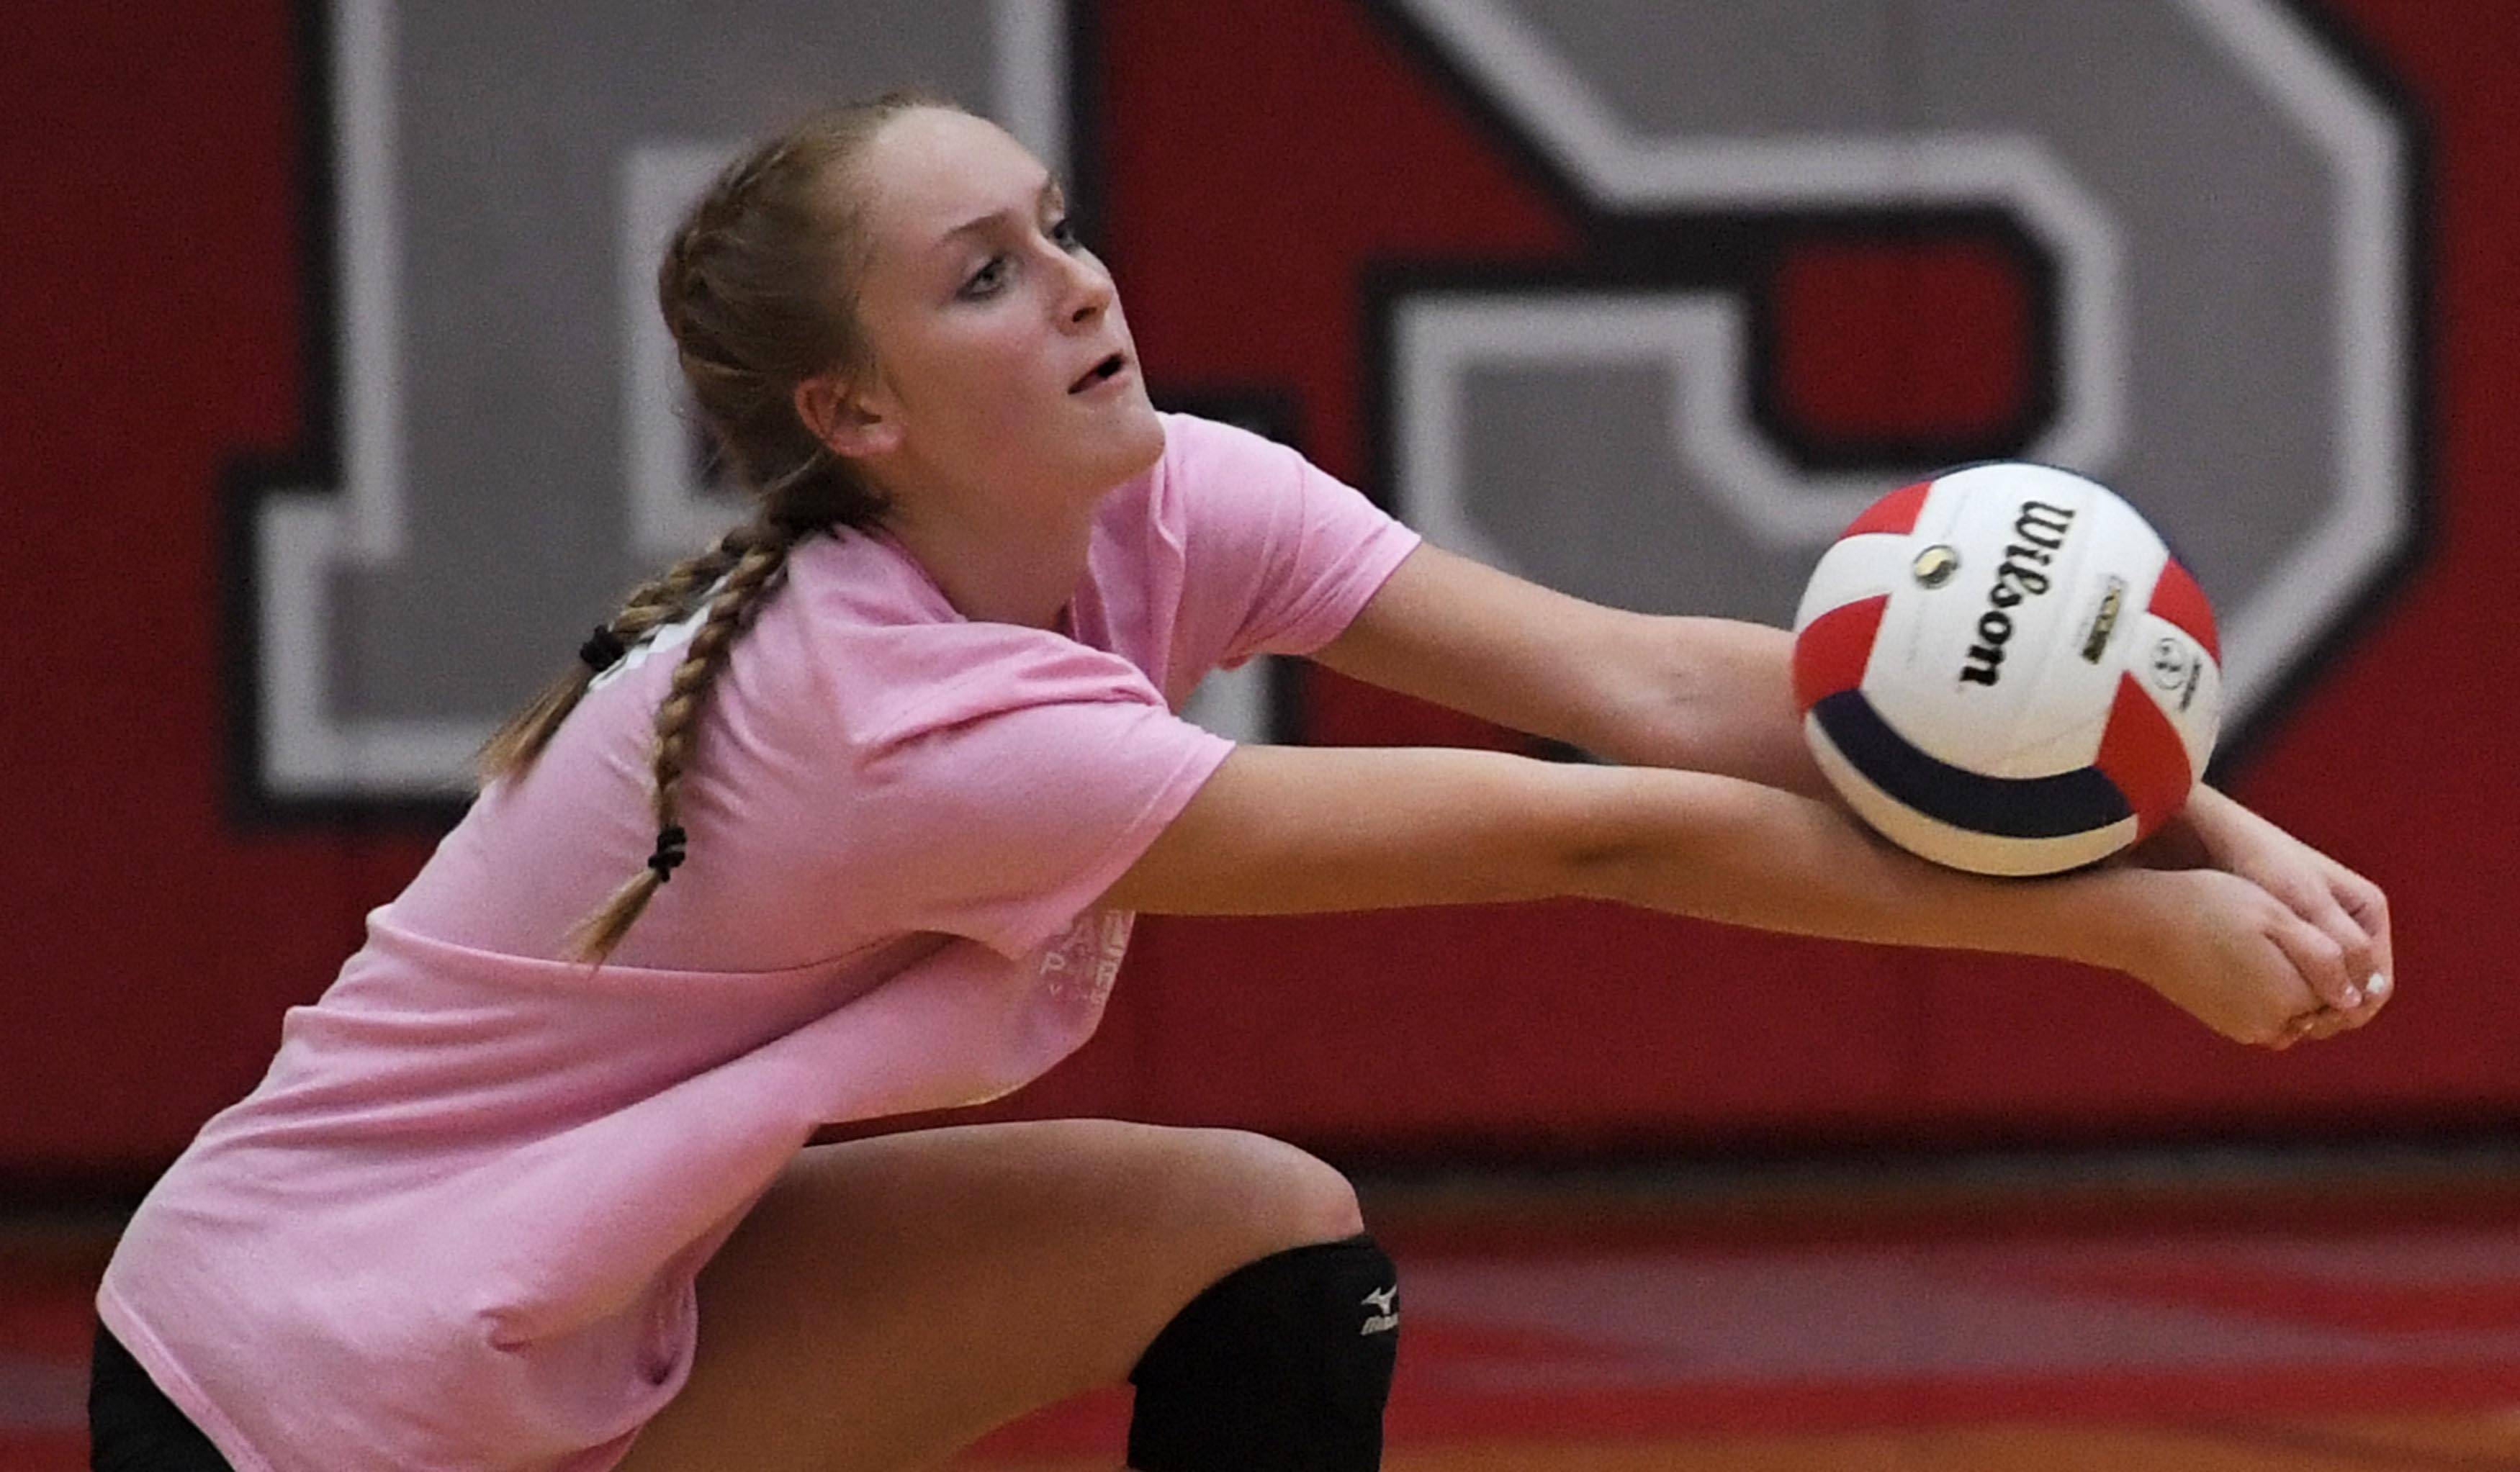 Palatine's Jillian Smith reaches for a shot by Fremd Thursday in a girls volleyball match at Palatine High School.